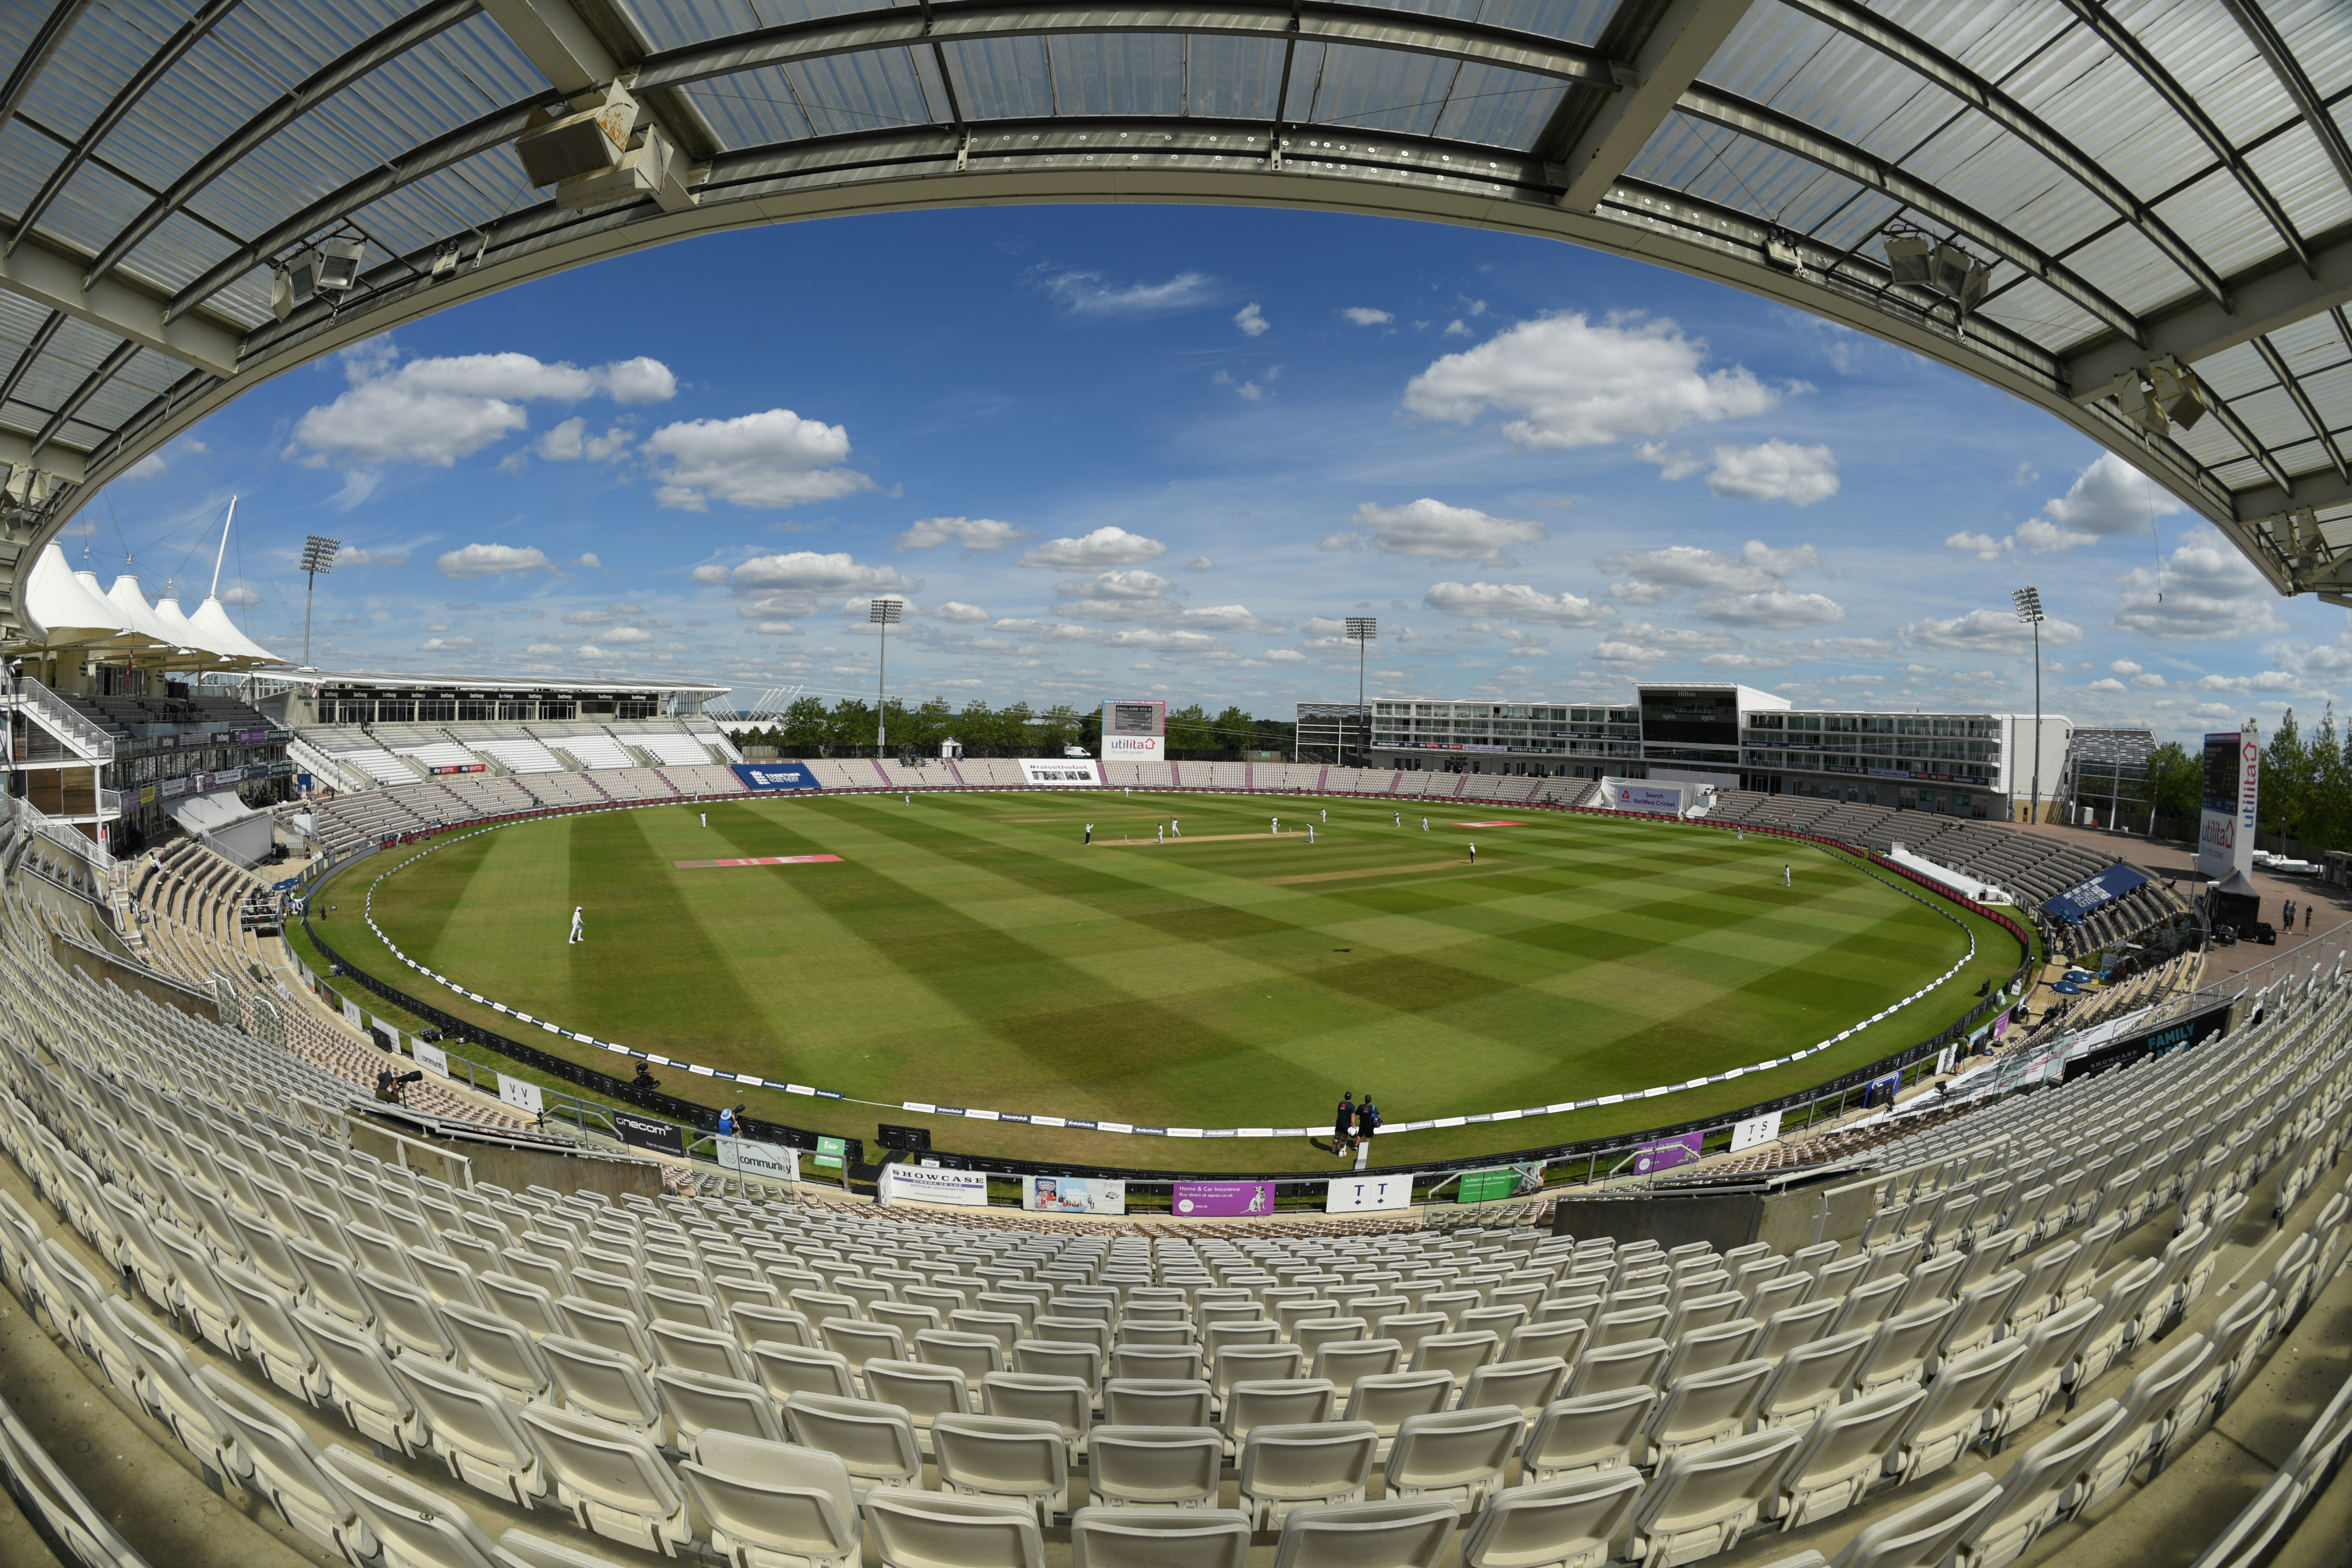 Cricket - First Test - England v West Indies - Rose Bowl Cricket Stadium, Southampton, Britain - July 12, 2020   General view during the match  Mike Hewitt/Pool via REUTERS/File Photo